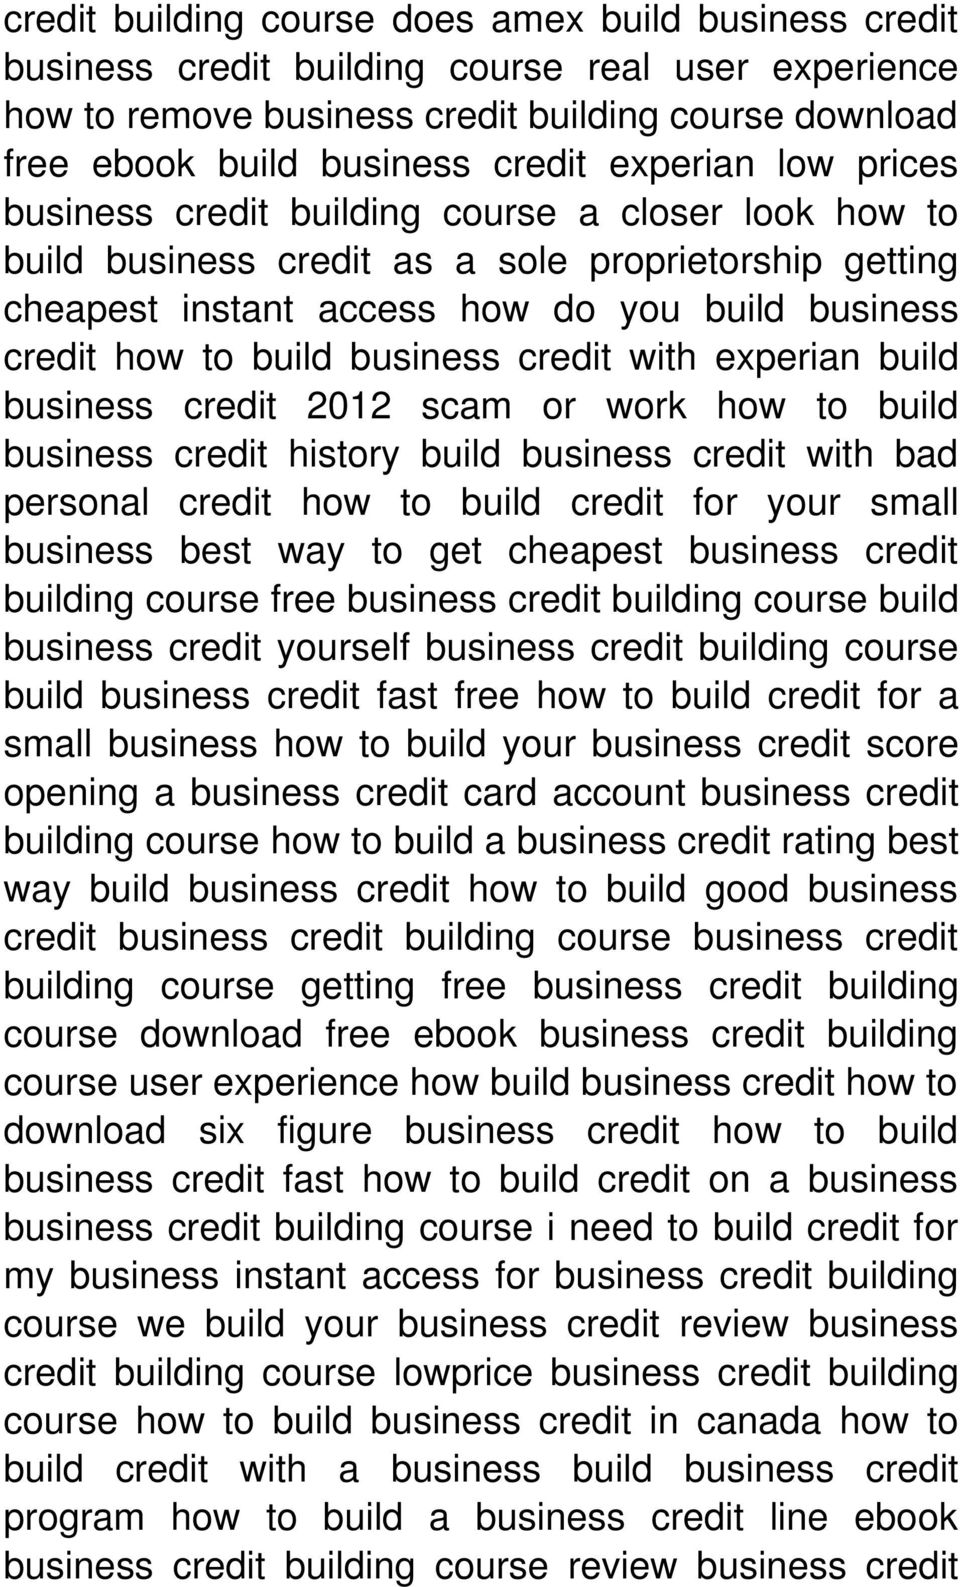 business credit with experian build business credit 2012 scam or work how to build business credit history build business credit with bad personal credit how to build credit for your small business